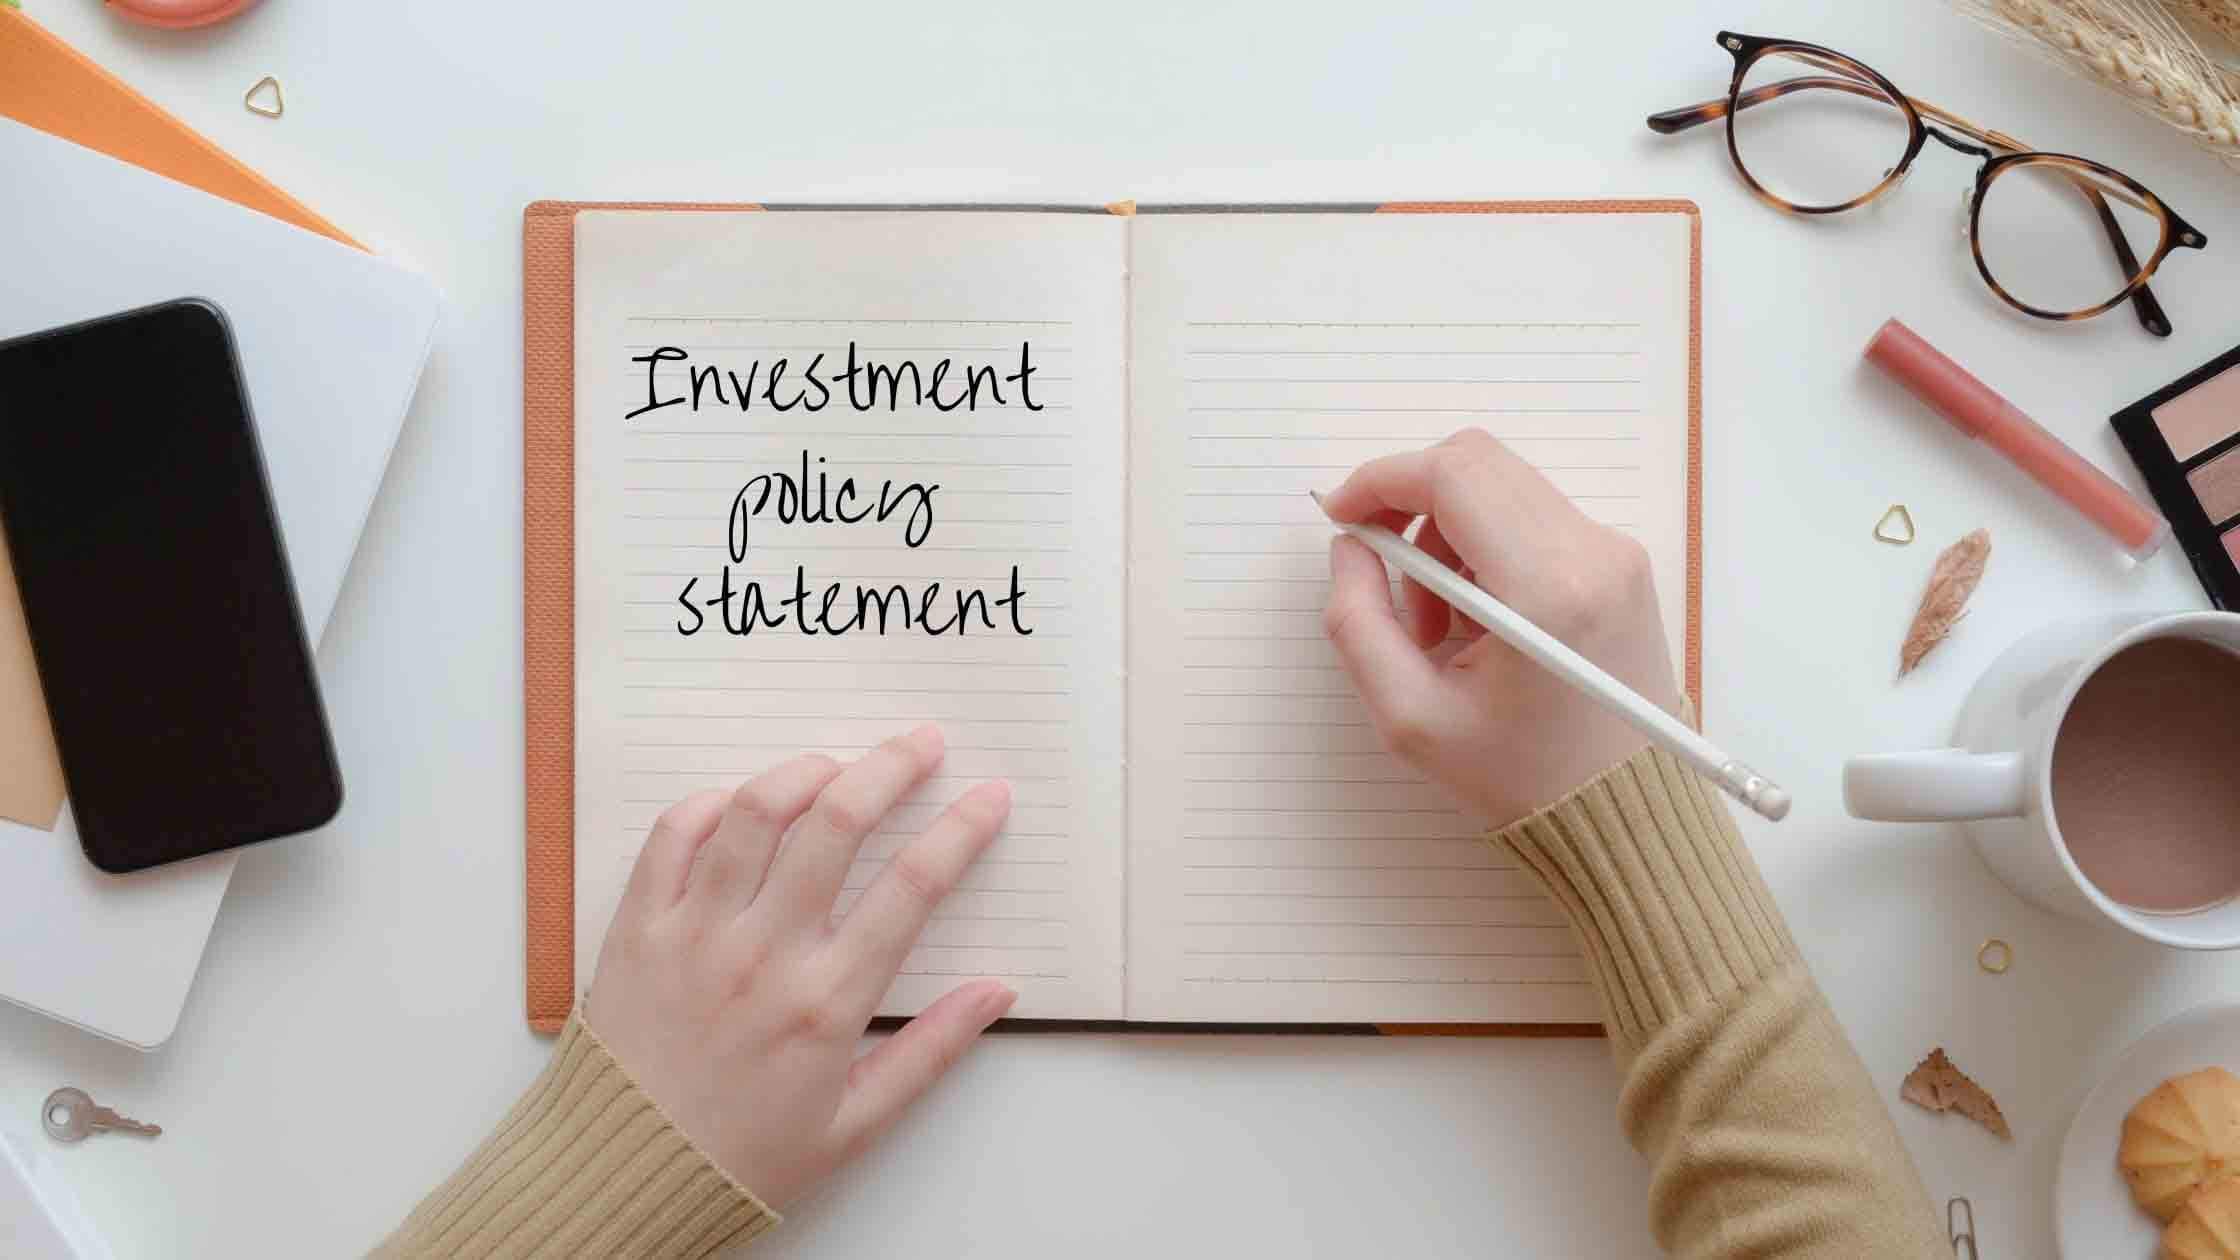 Govt reviews investment policy